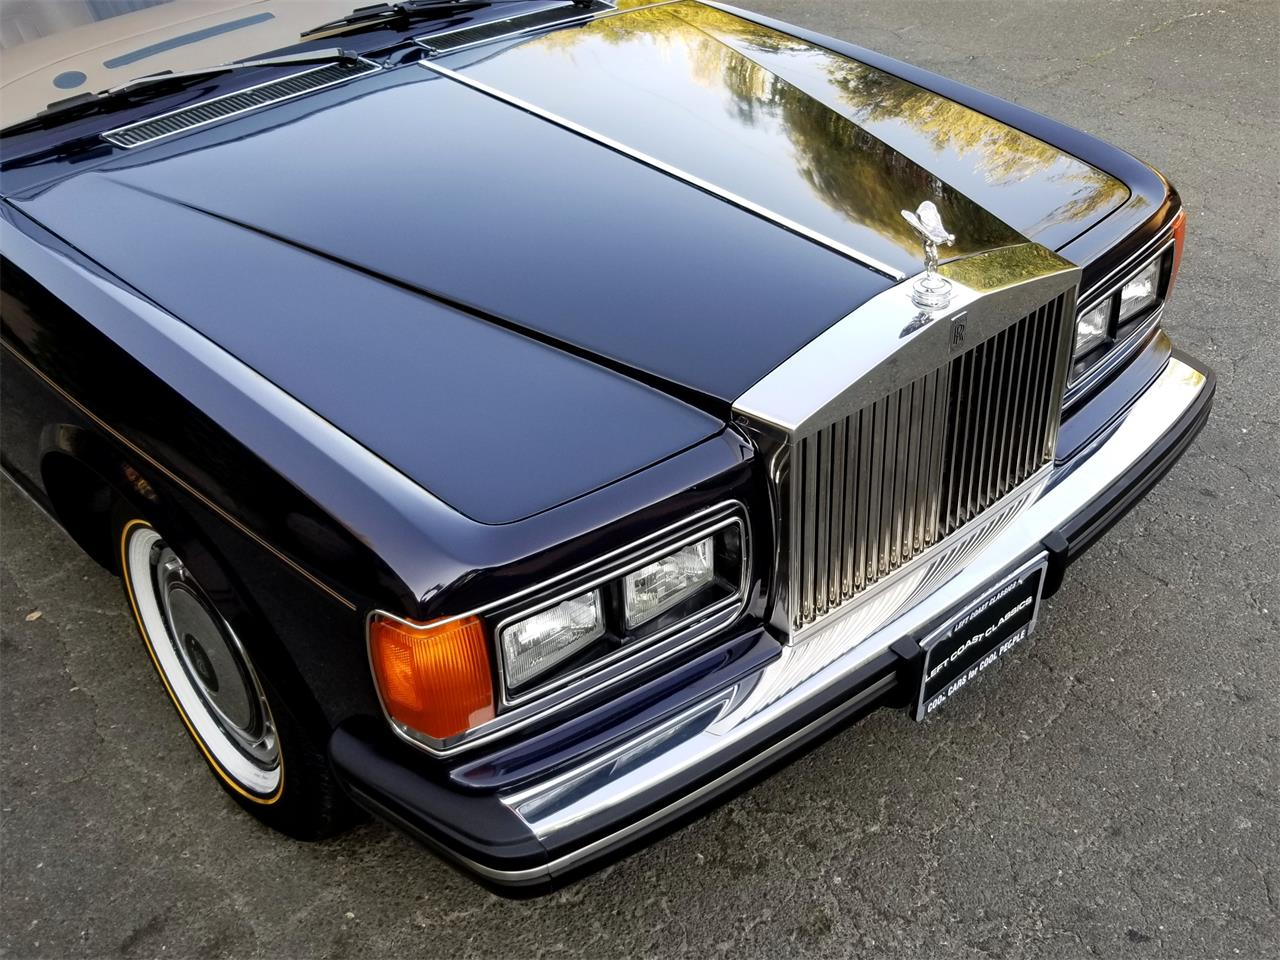 Large Picture of '91 Rolls-Royce Silver Spur located in California - $19,900.00 Offered by Left Coast Classics - OFJA